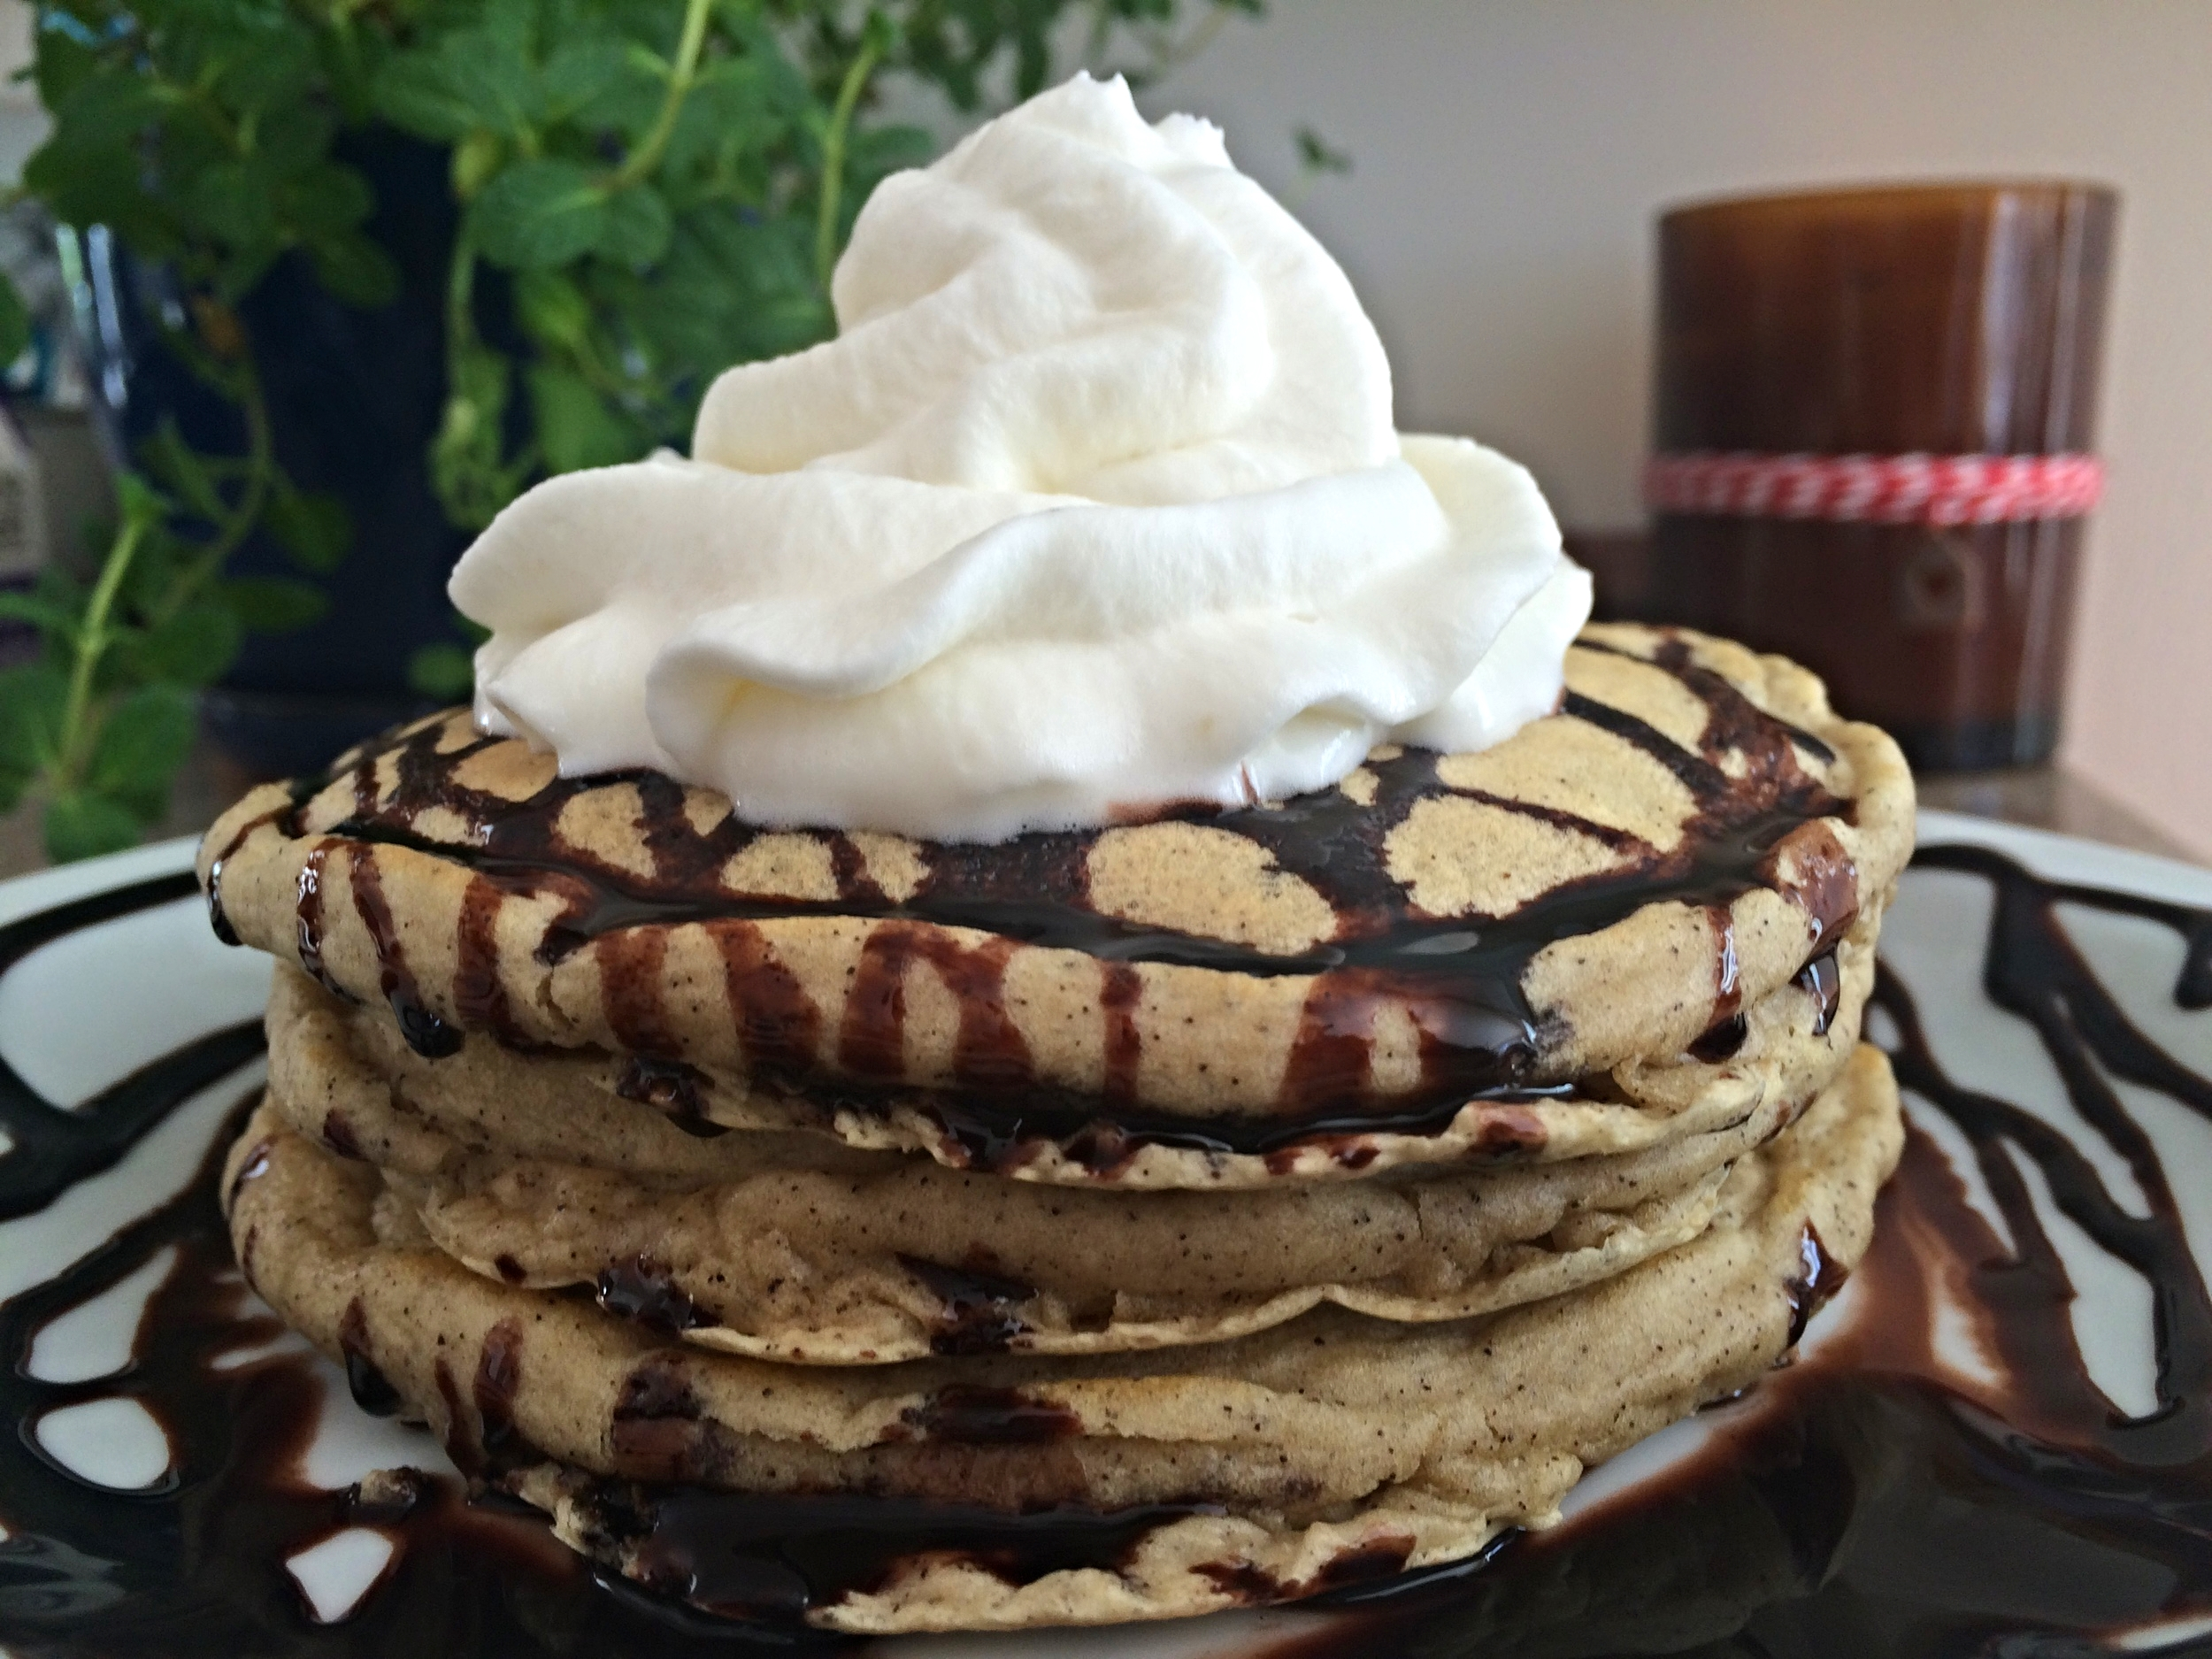 I got a little chocolate drizzle happy. Not to mention this was a time sensitive photo, the first whipped cream mound melted and slipped off the back due to the hot and delicious nature of the pancakes. Pictured here, whipped cream mound take 2.